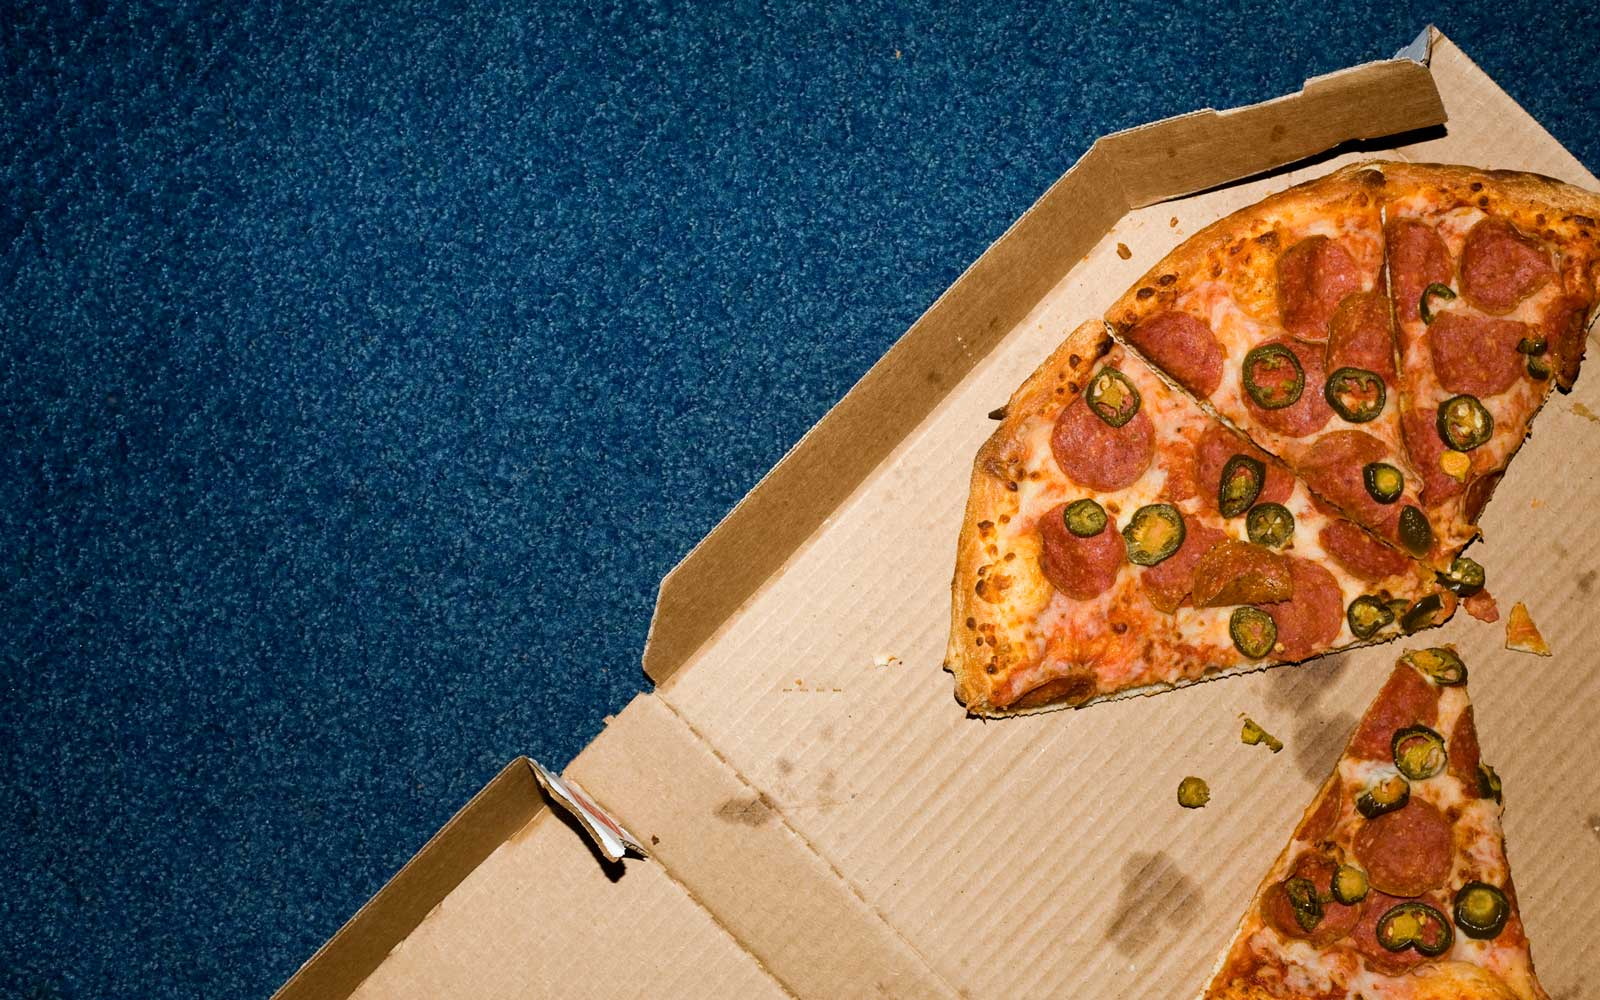 This Is What Happens When Google Maps Accidentally Labels Your Home as a Pizza Joint